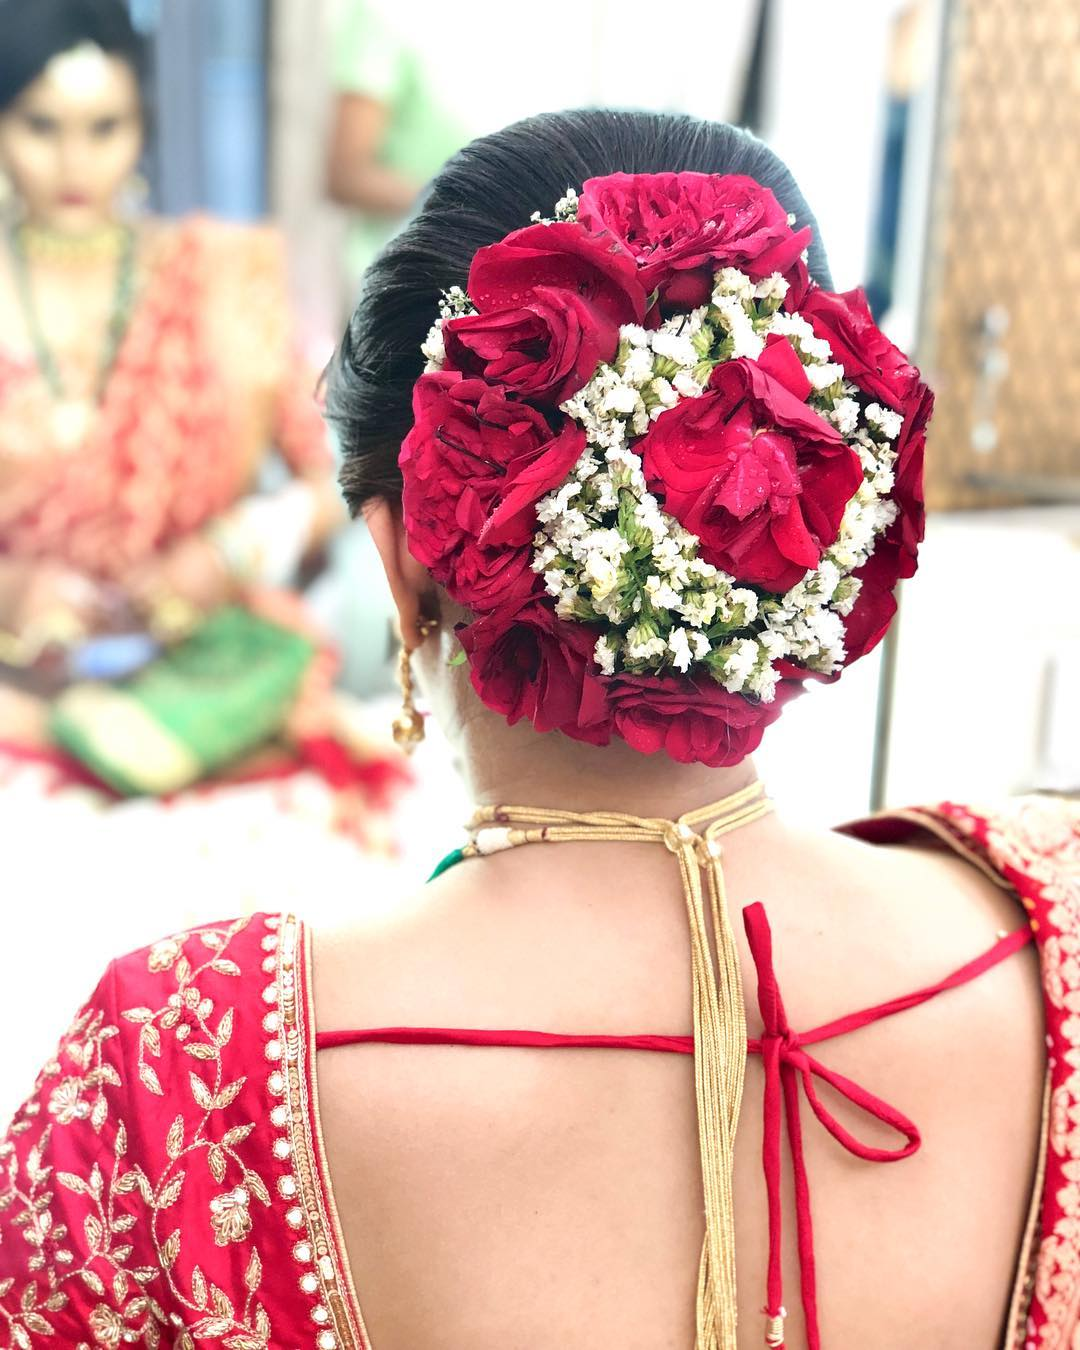 A dose of Rose: Bridal Bun Hairstyles with Flower Jewellery